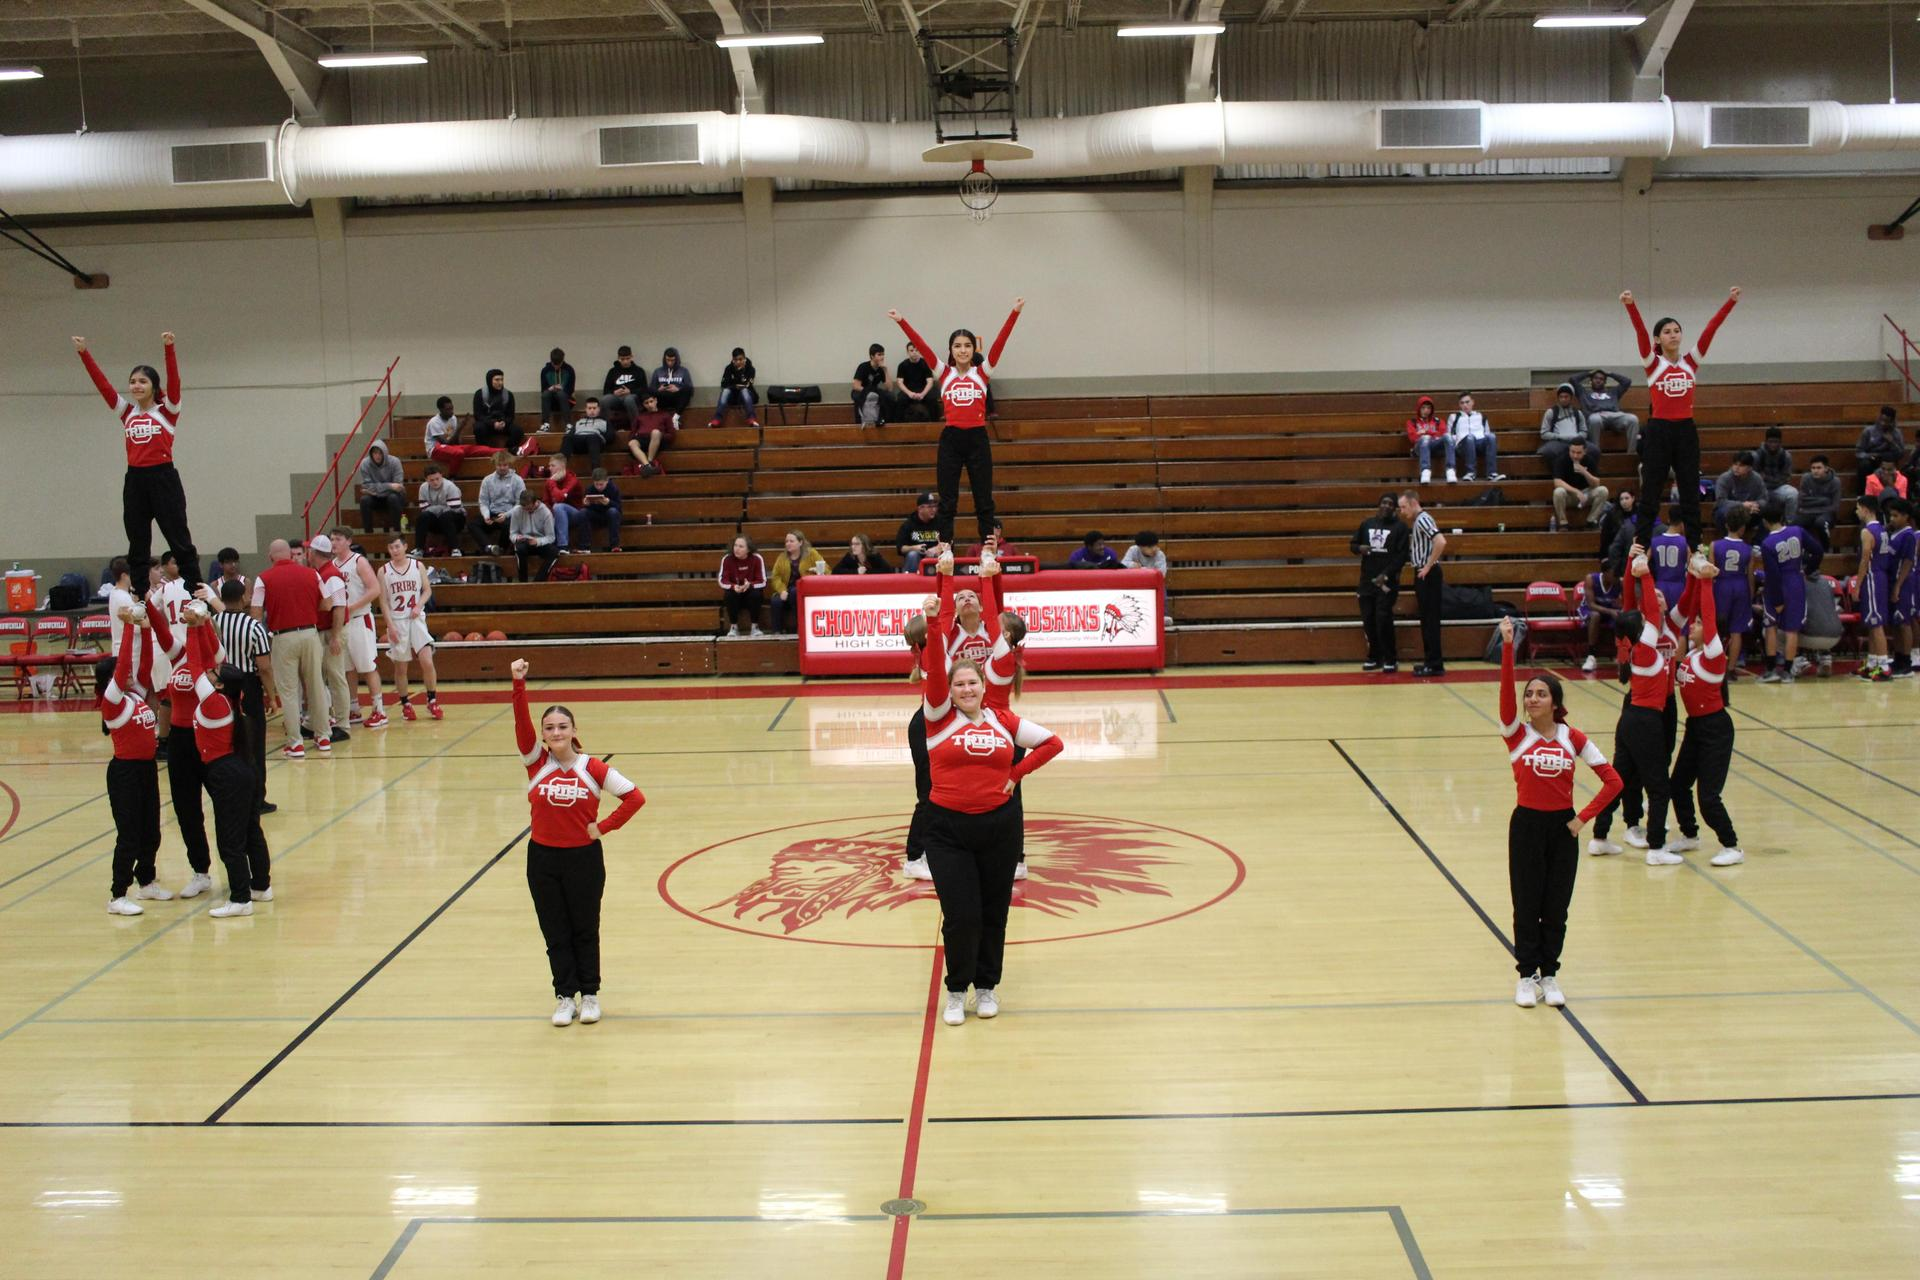 Jv Cheer cheering for Jv boys basketball